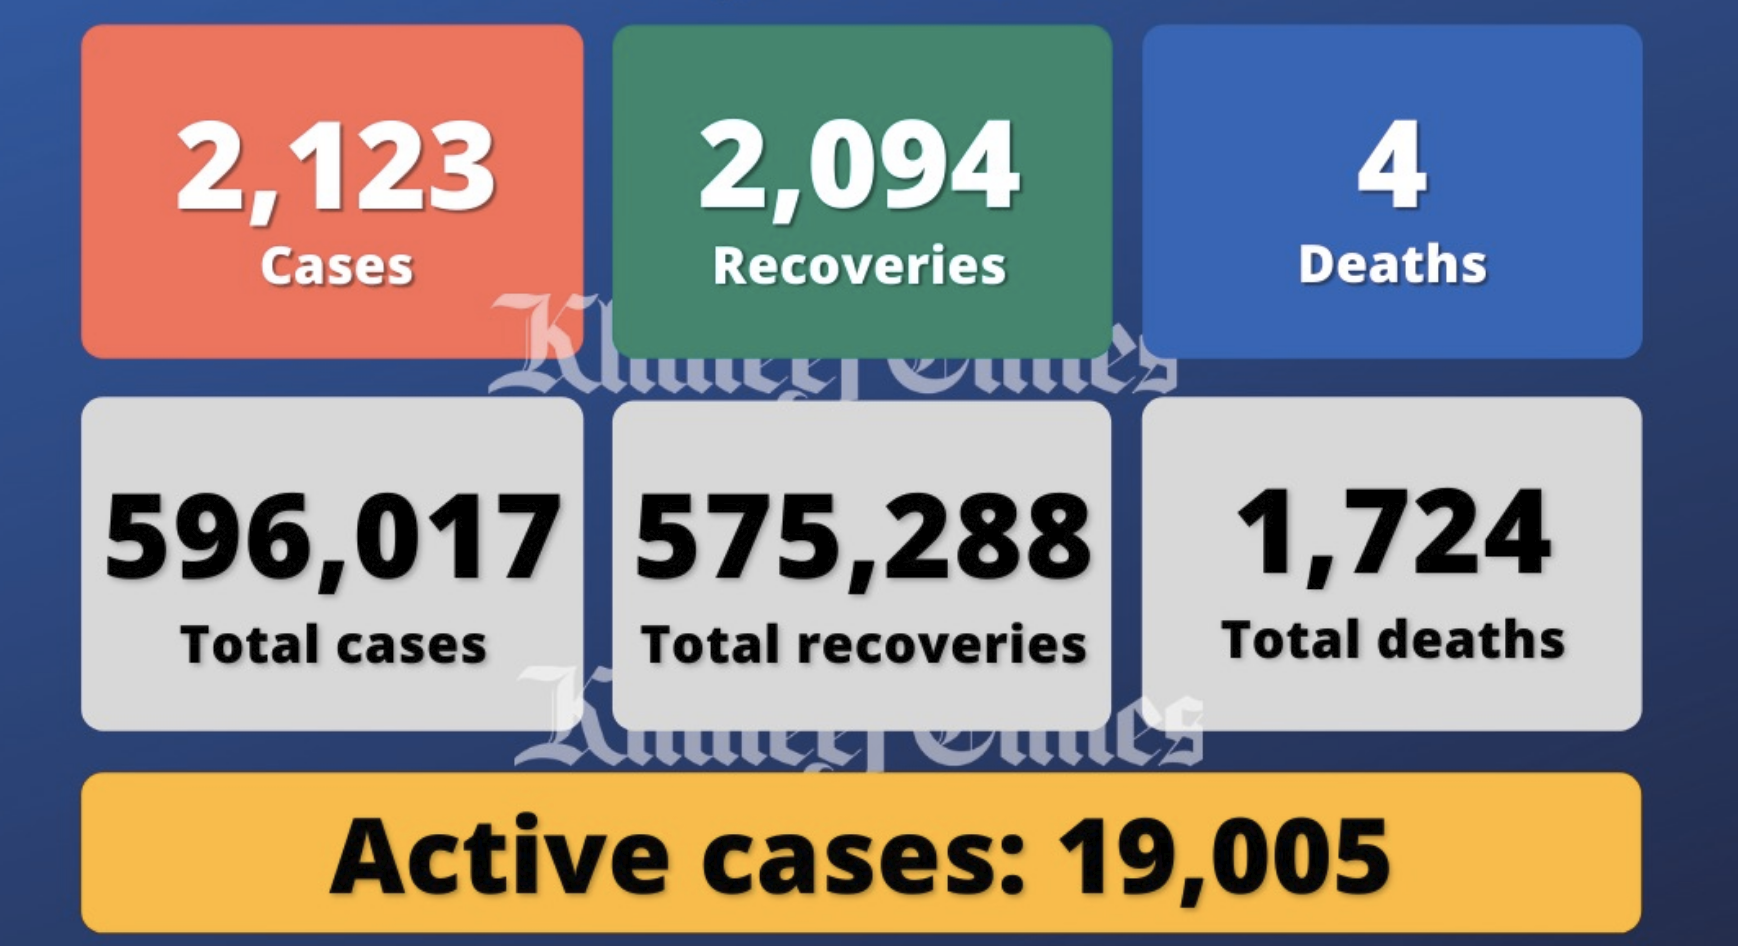 UAE reports 2,123 Covid cases, 2,094 recoveries, 4 deaths